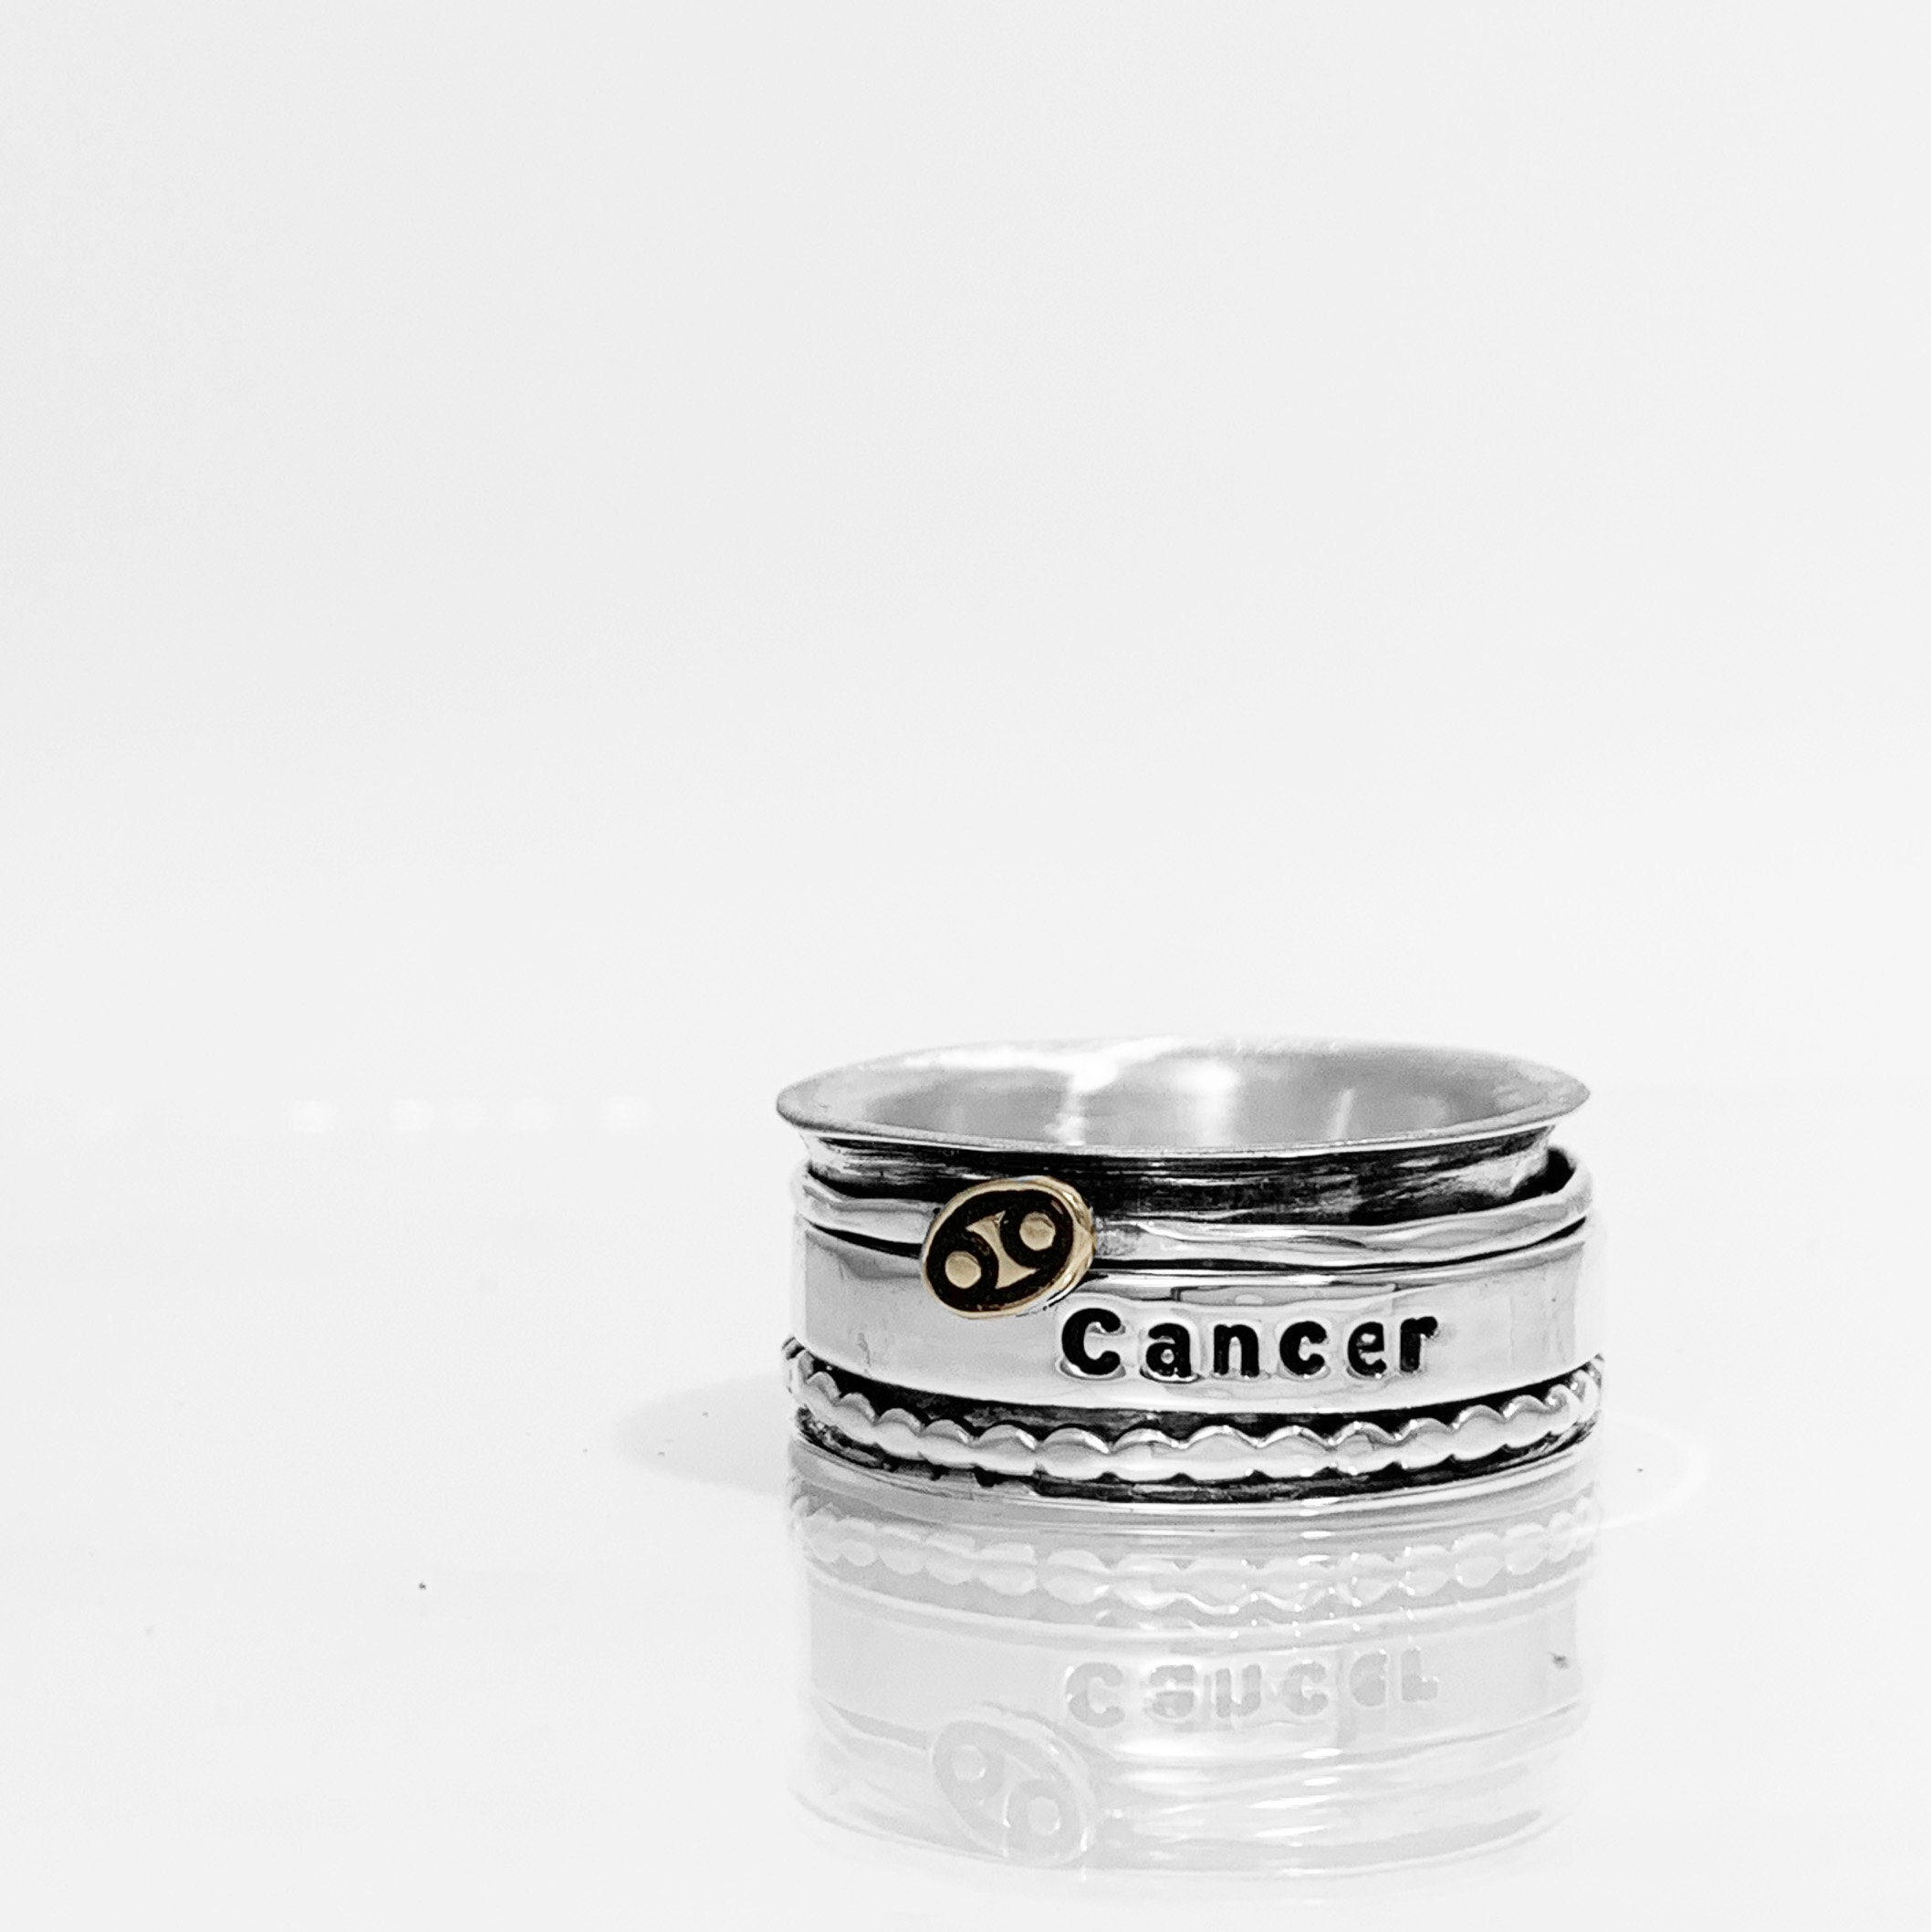 Cancer Spinner Ring